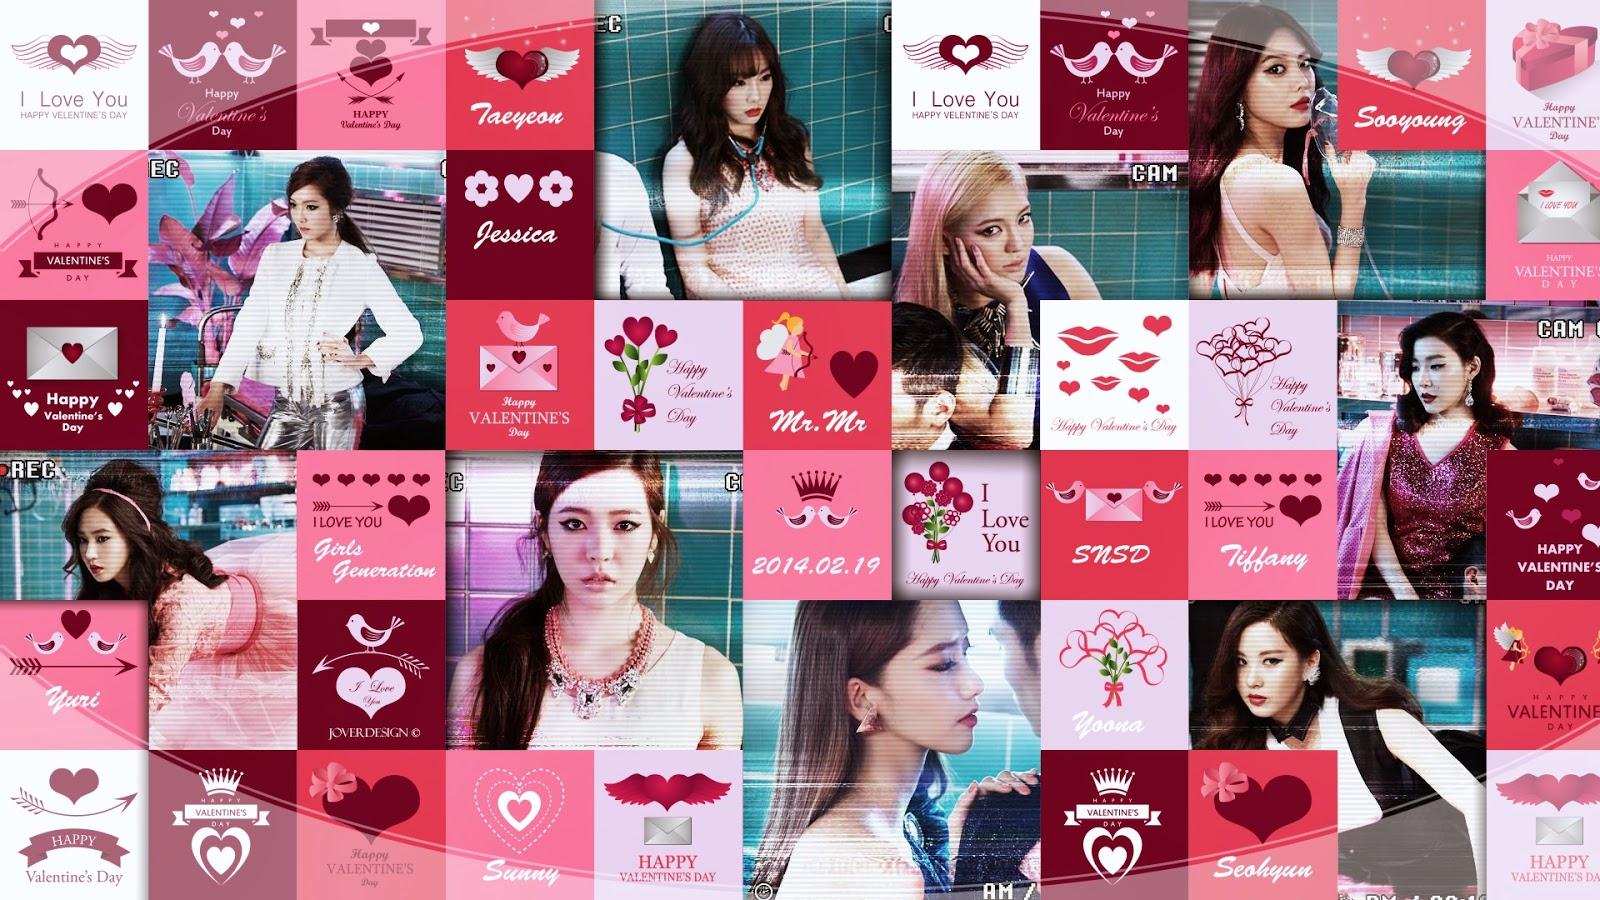 SNSD Girls' Generation Wallpaper 2014 - Free Kpop ...